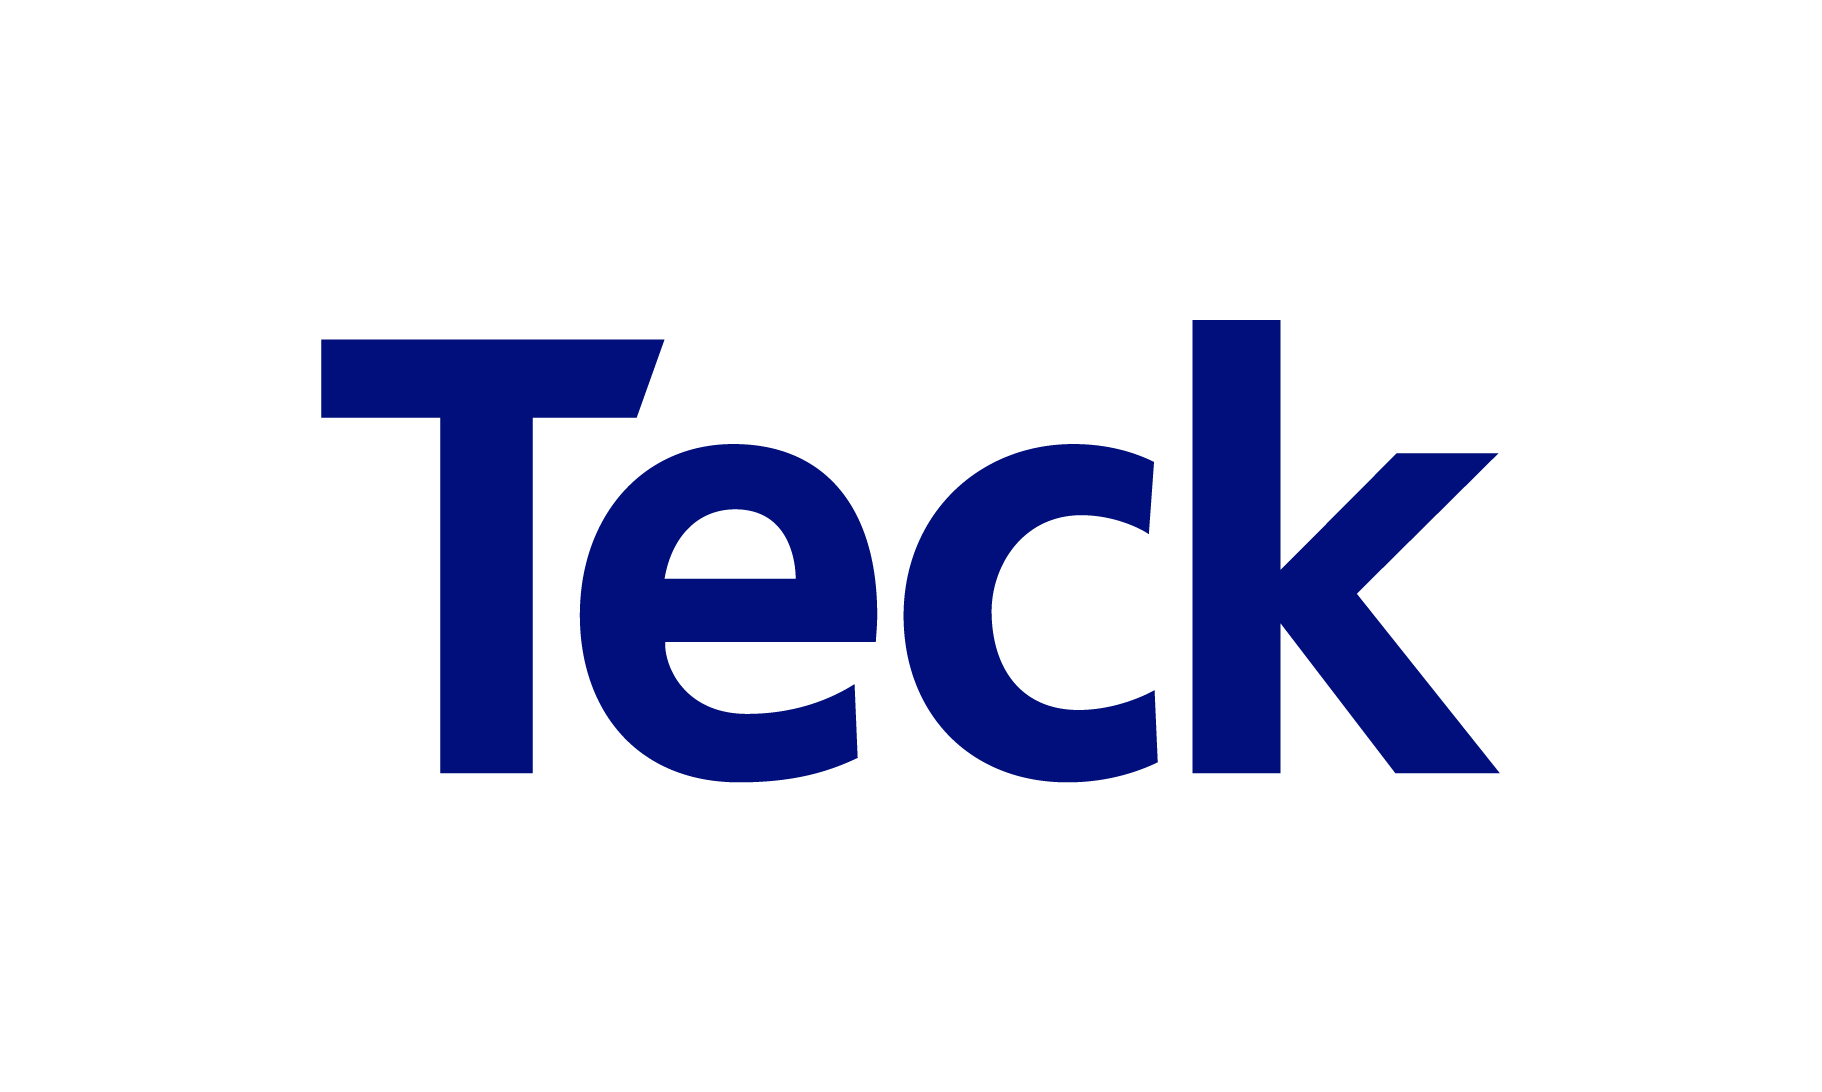 Teck Announces 33% Carbon Reduction Target and Updated Sustainability Strategy